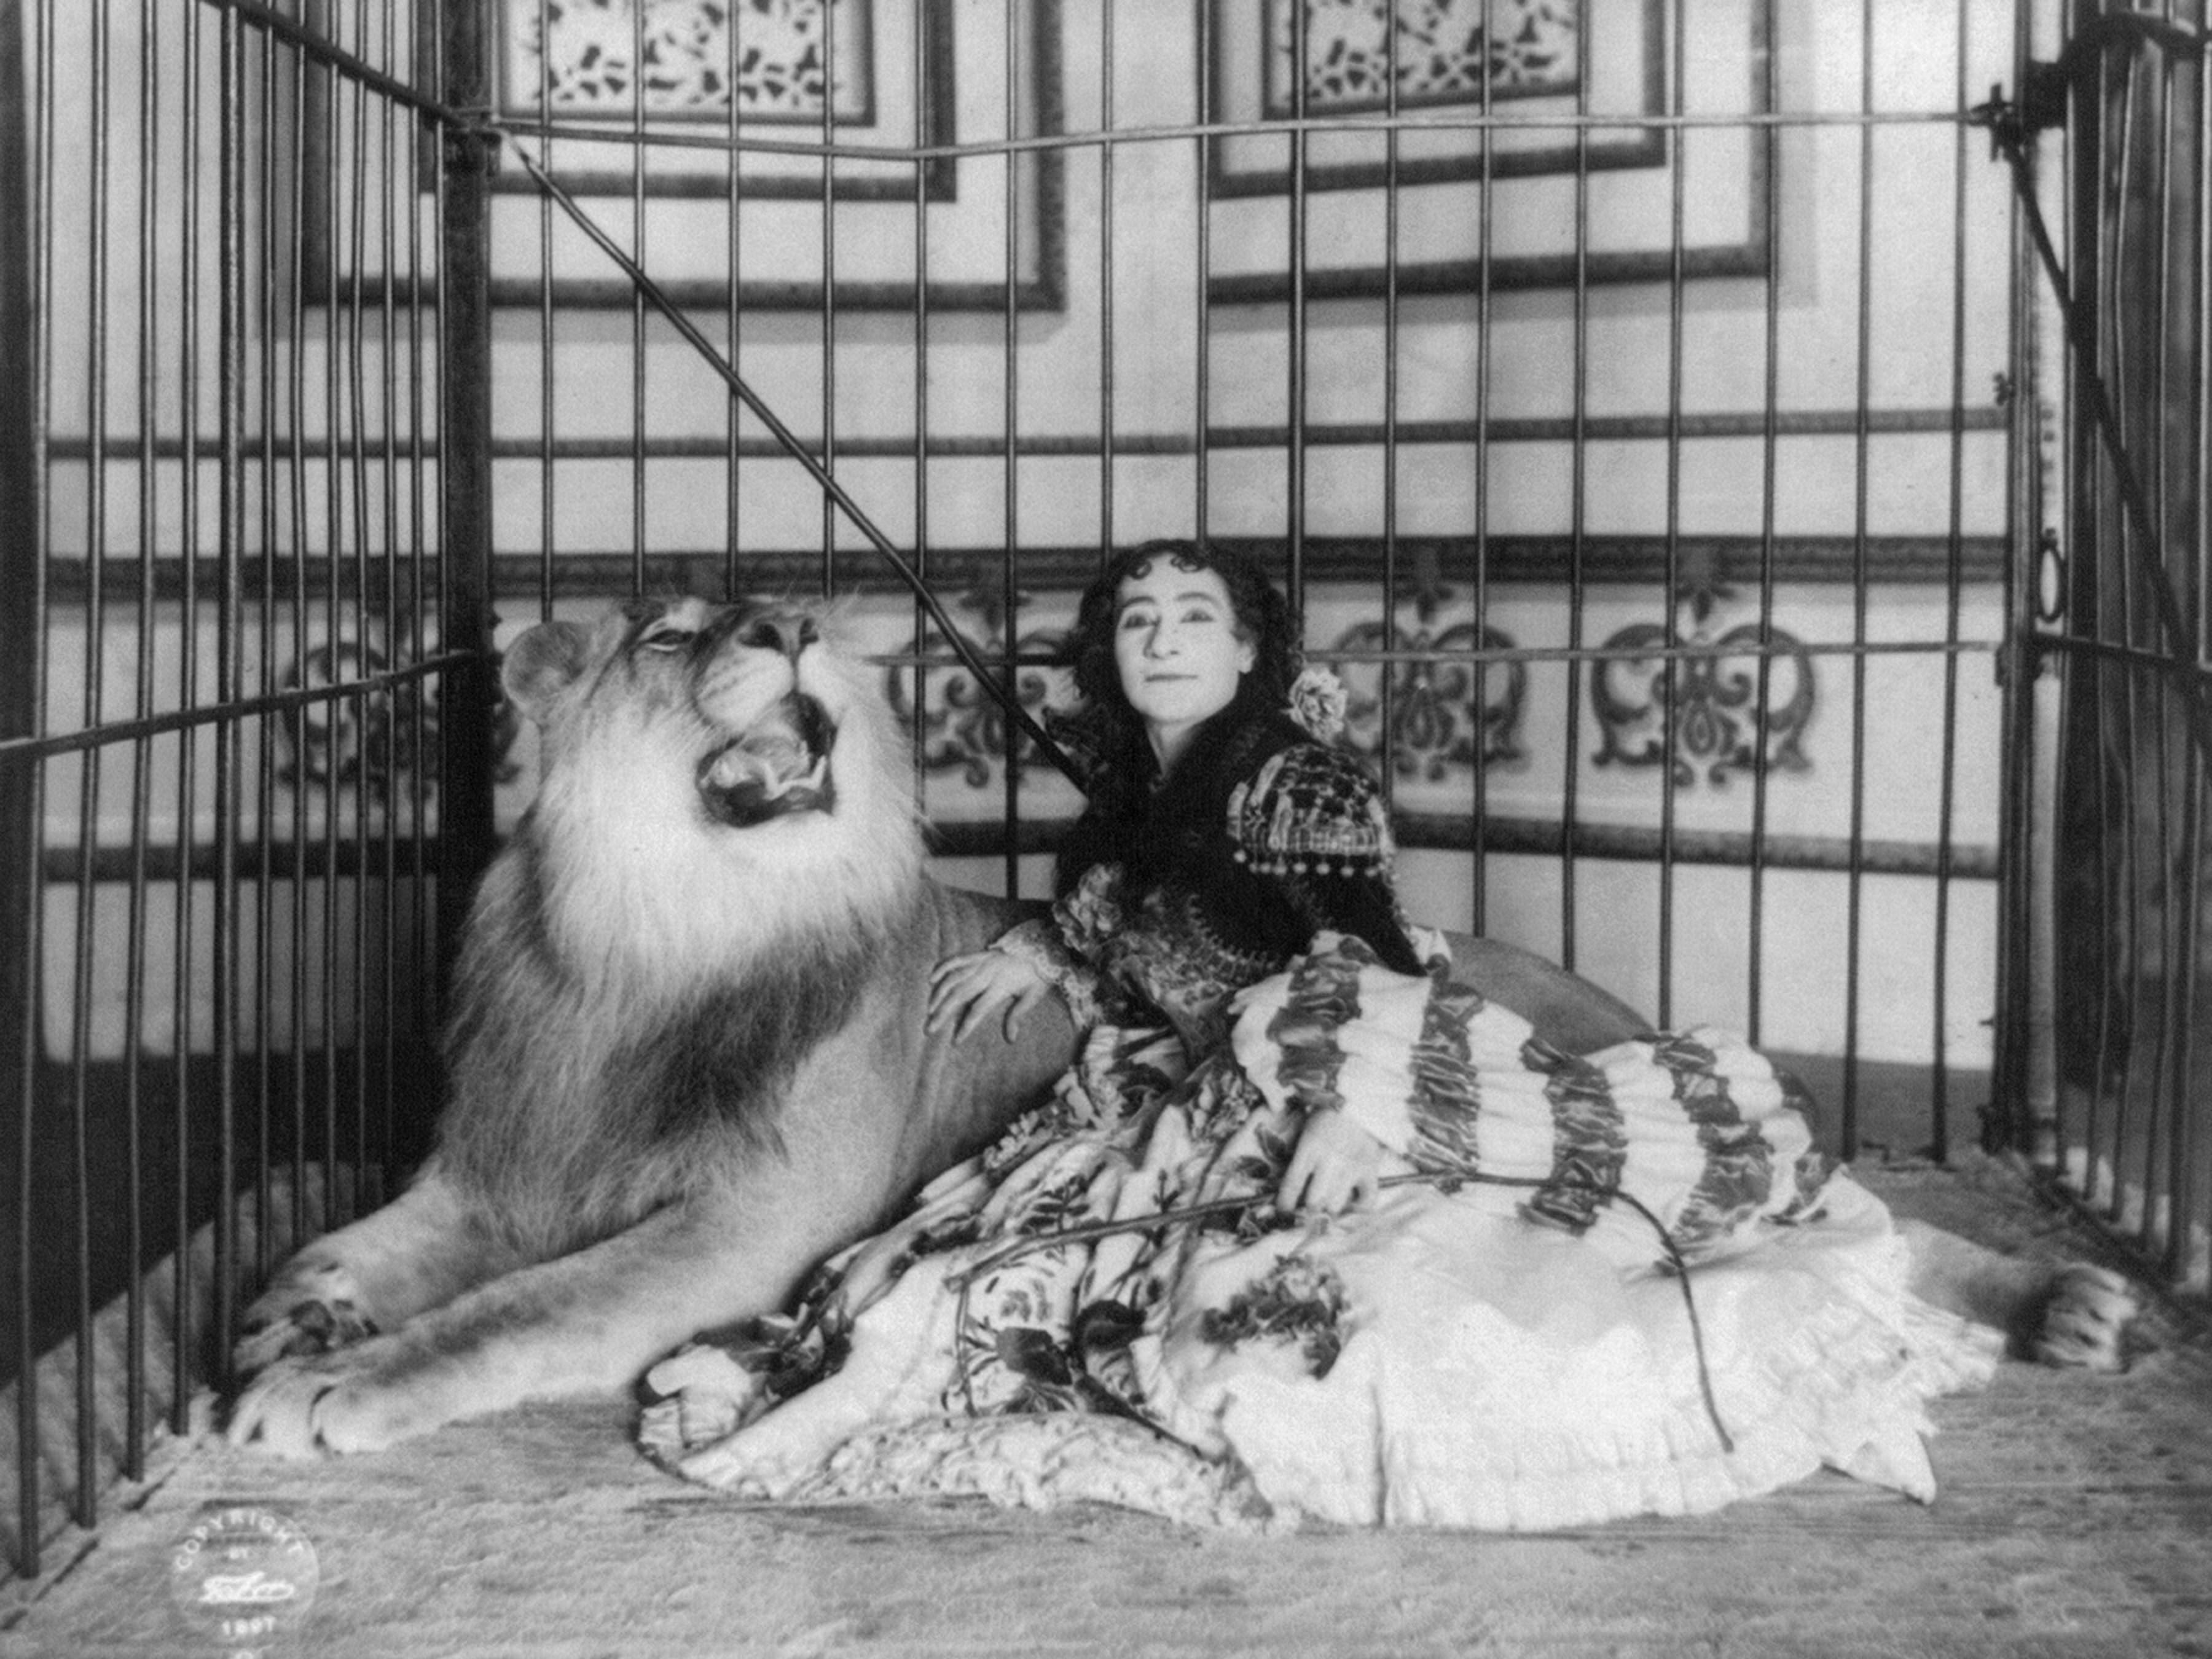 Early 20th C True Lion Tamer Circus Photography Chairish